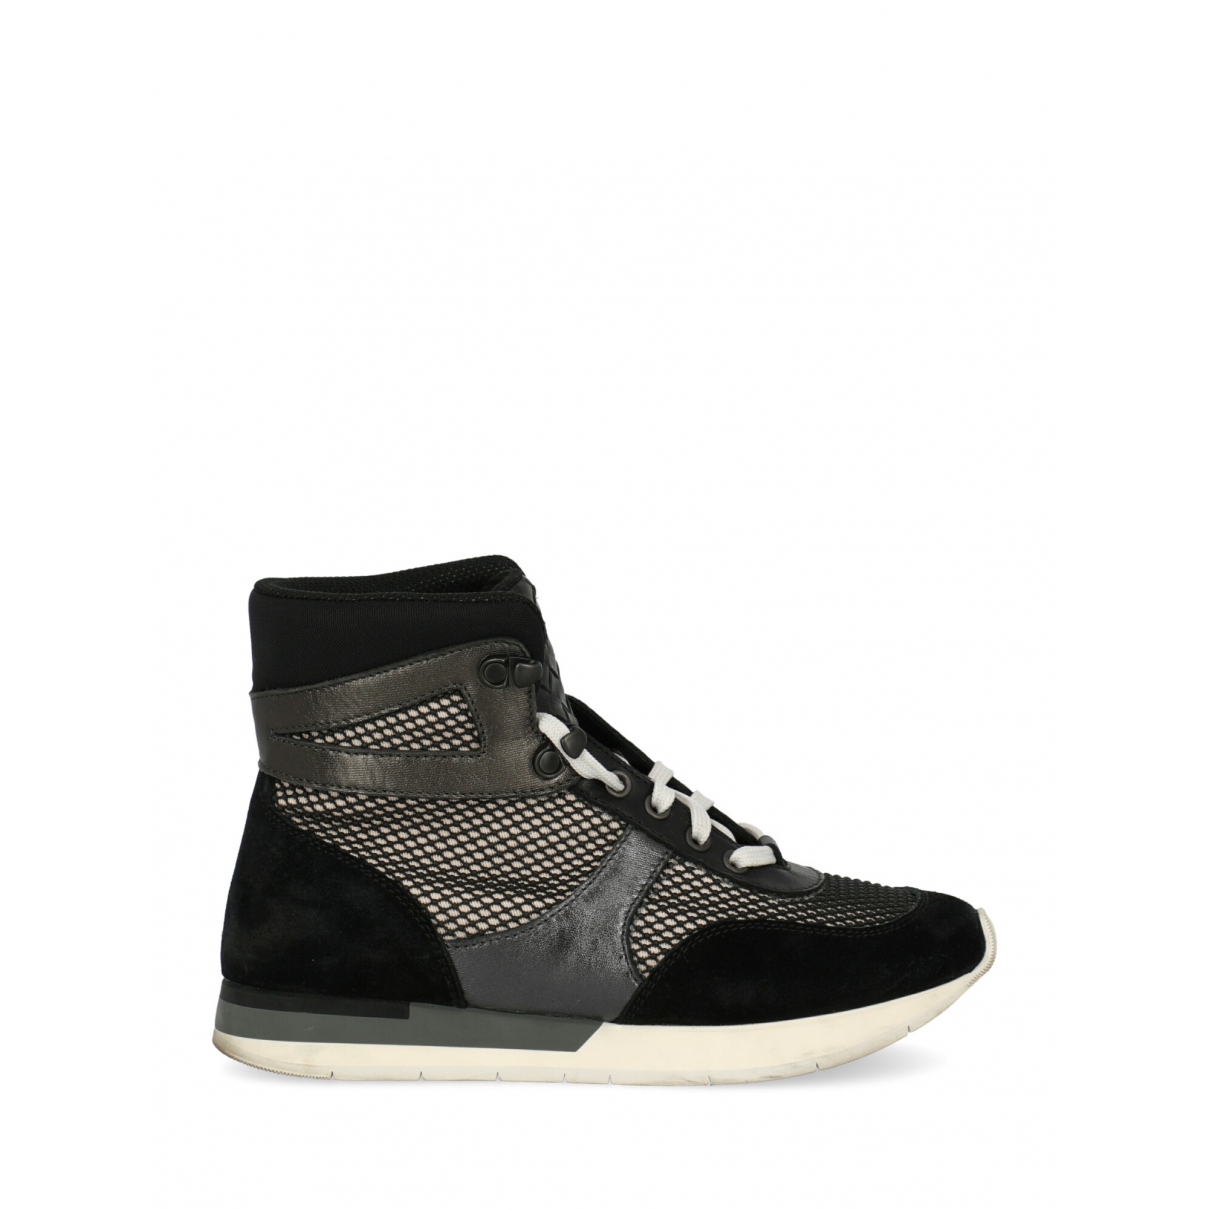 Bottega Veneta \N Sneakers in  Schwarz Leinen